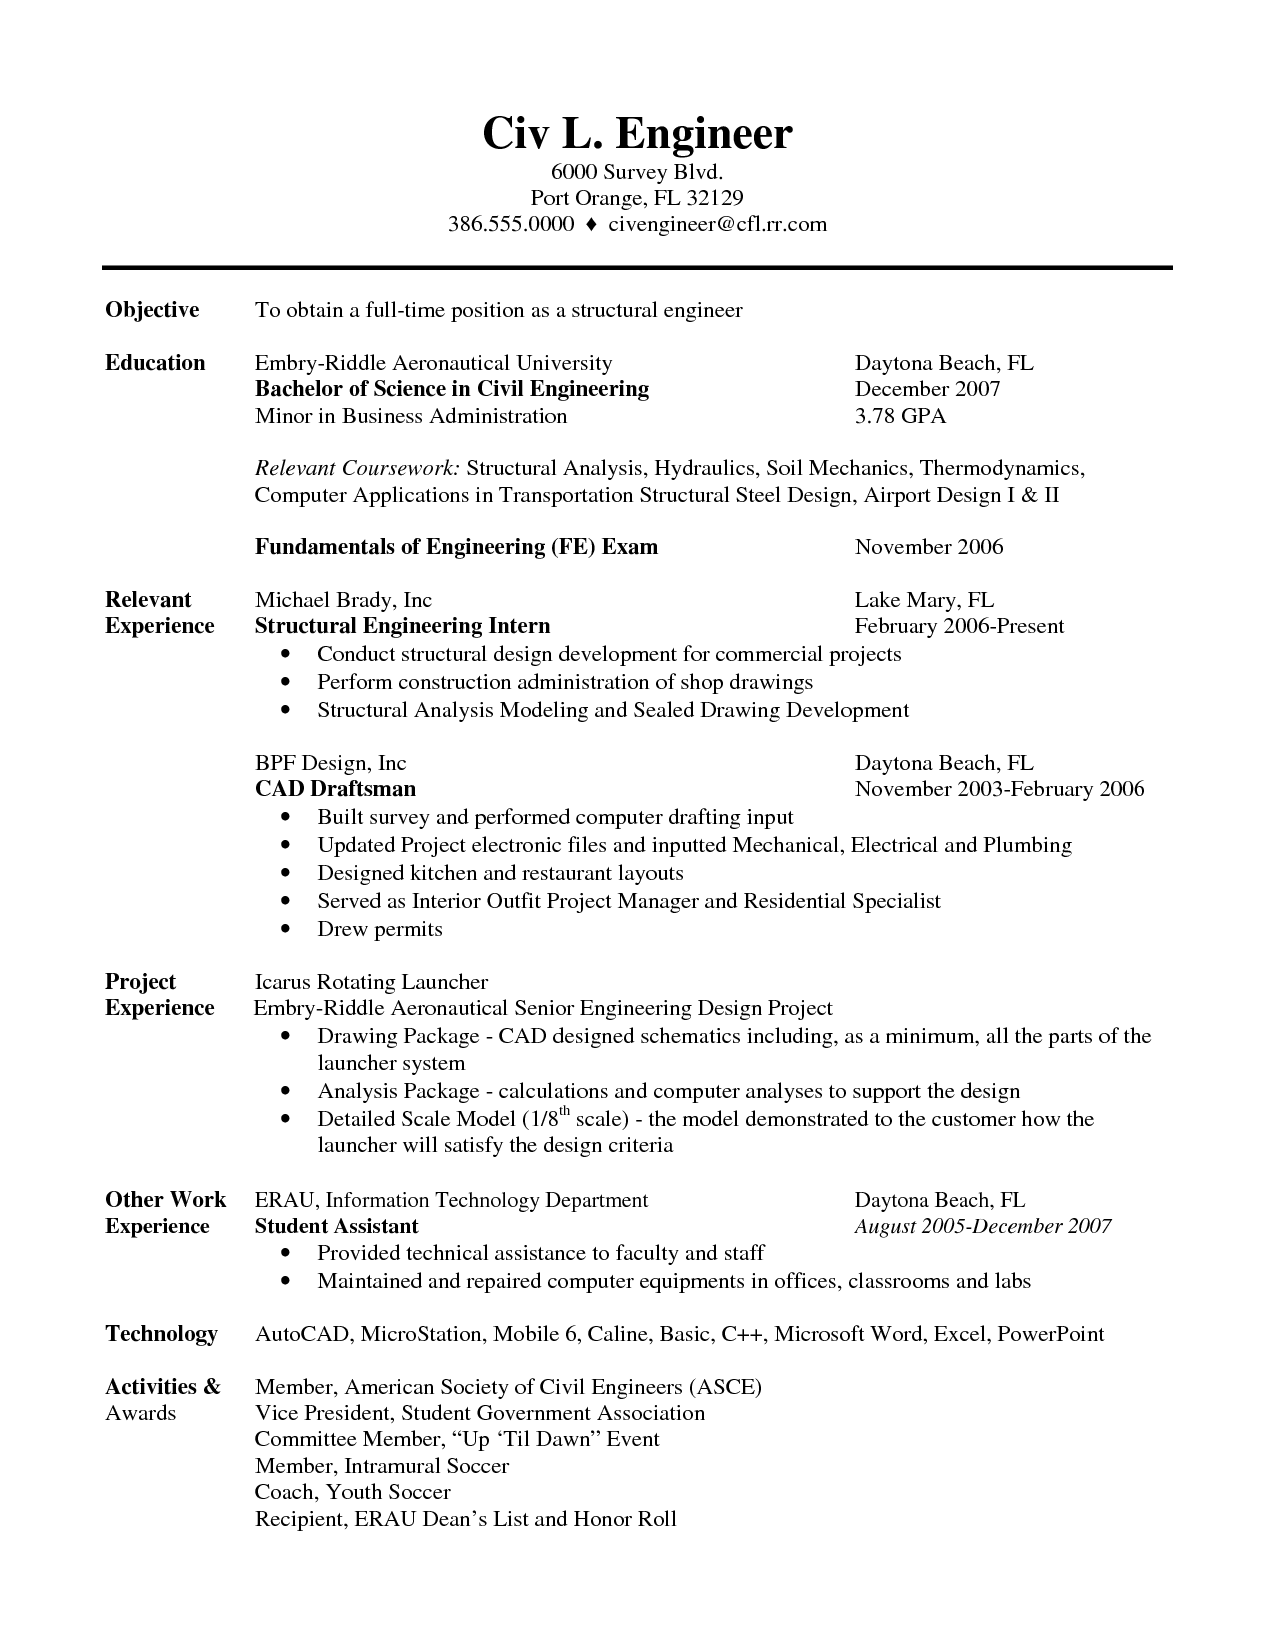 Civil Engineer Resume  HttpJobresumesampleComCivil